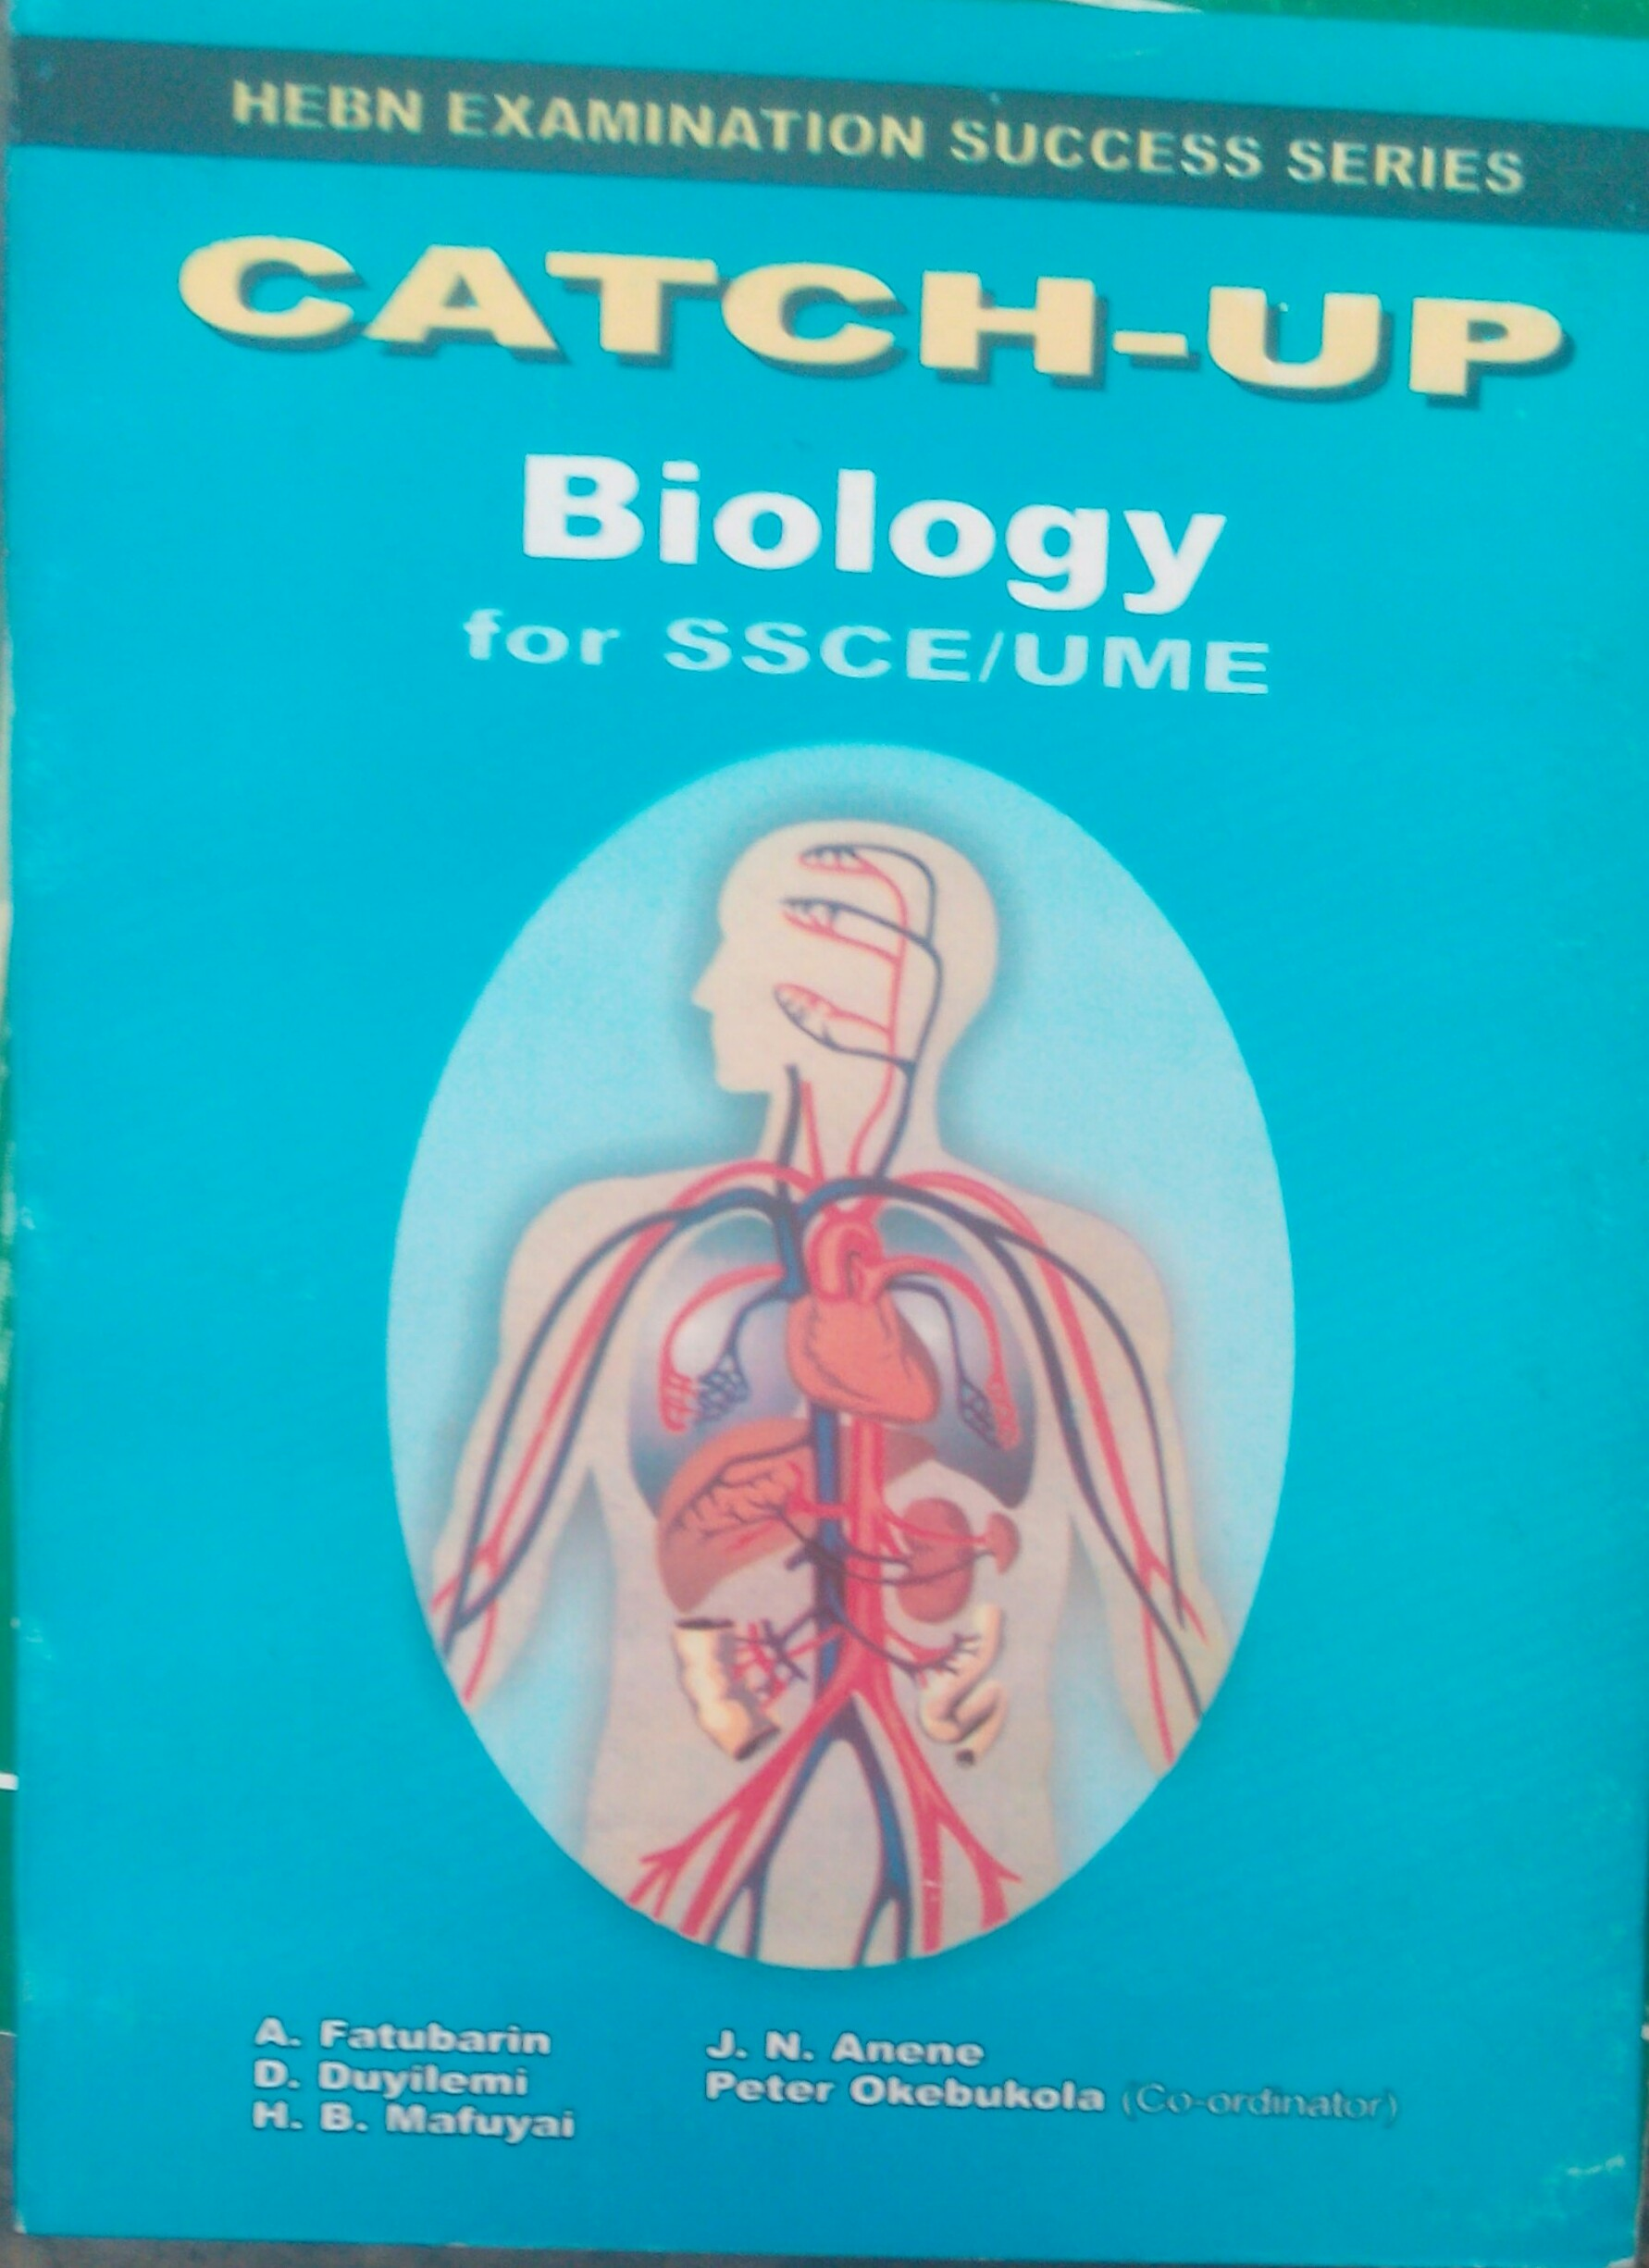 Catch-Up Biology for SSCE/UME